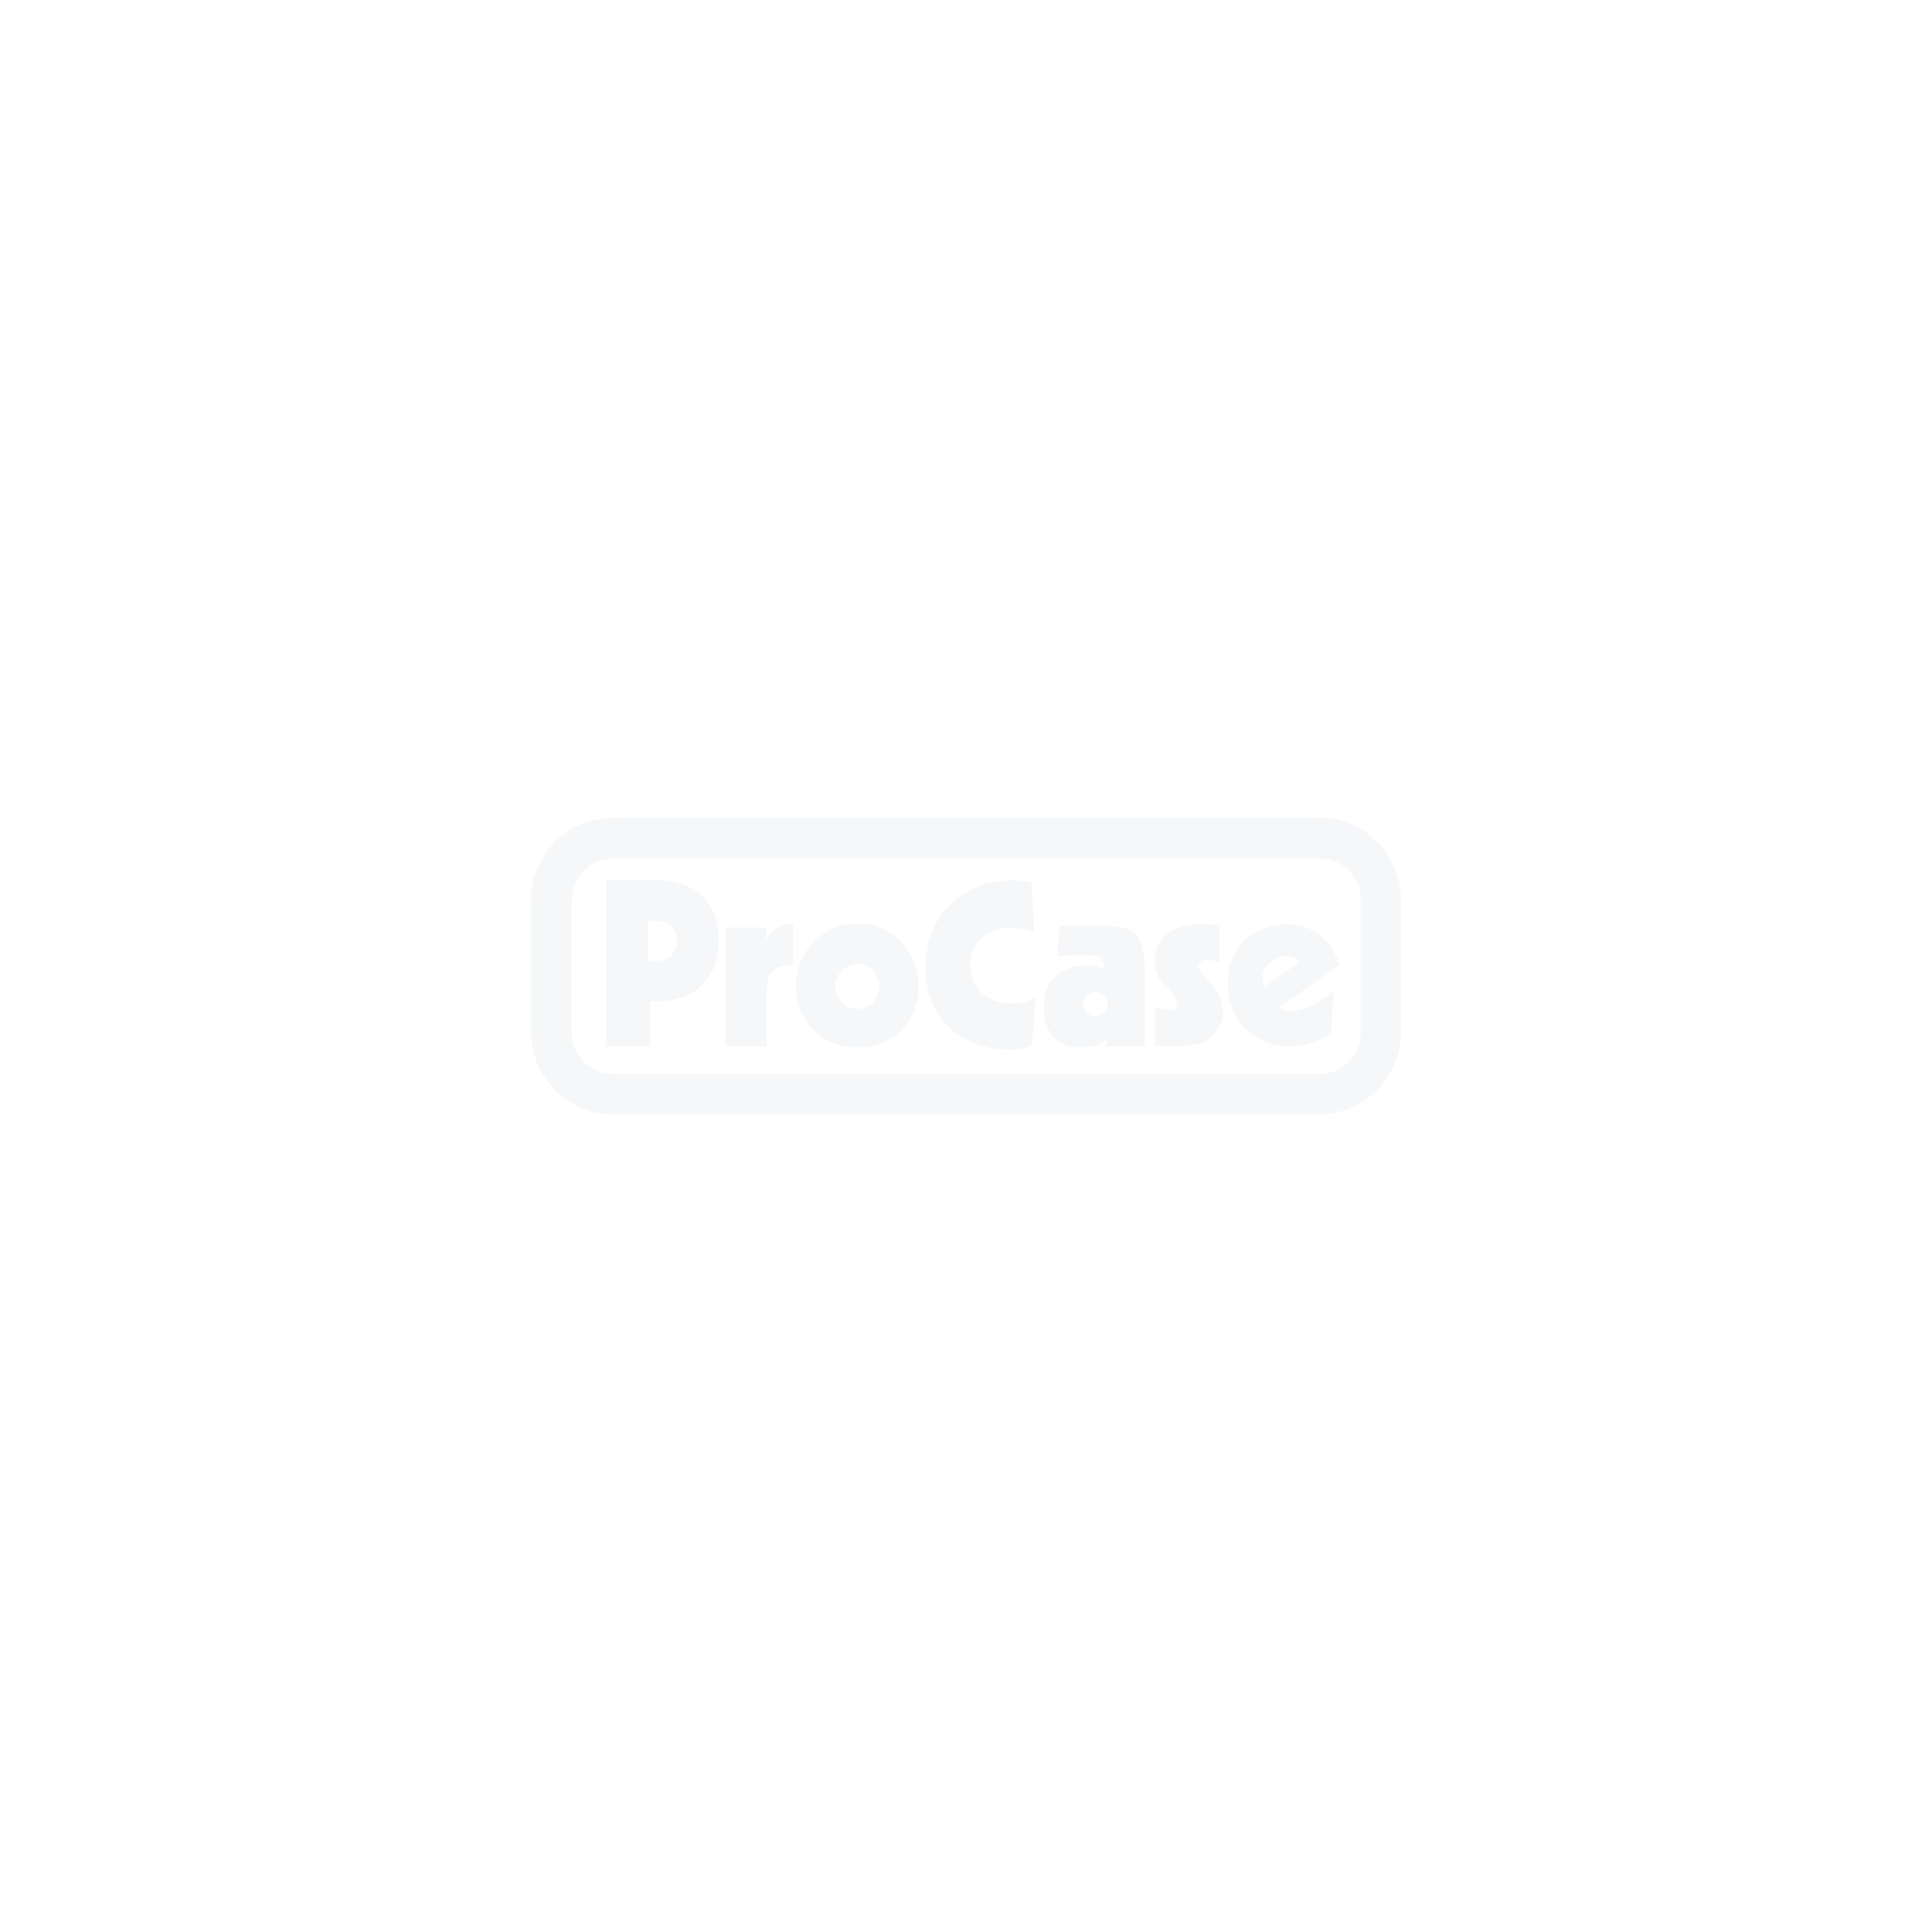 Flightcase für 4 ETC Source 4 Zoom 25-50° inkl. Klemme 2